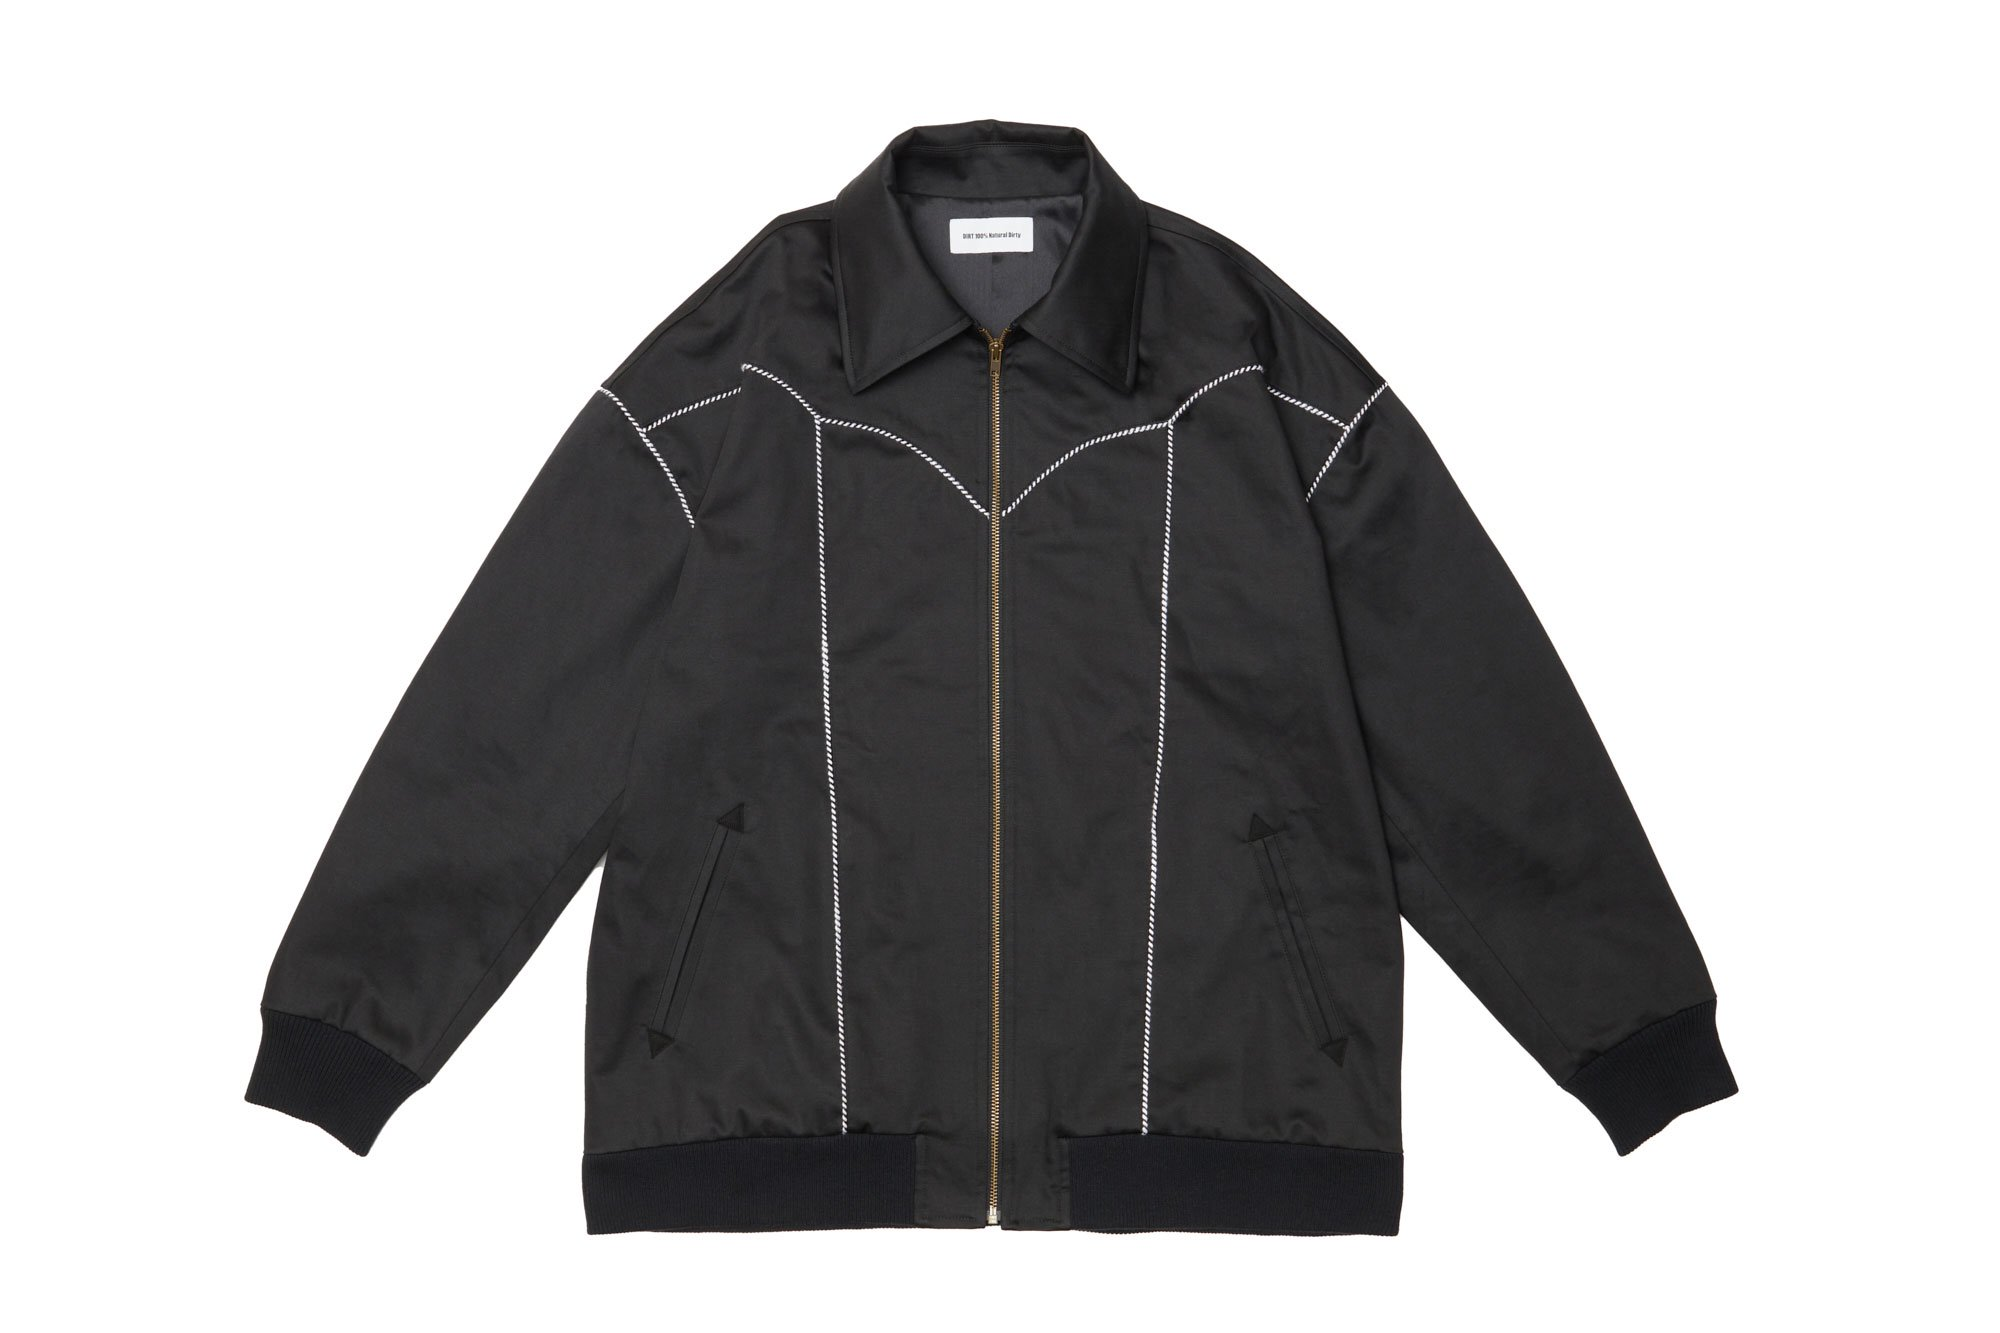 <img class='new_mark_img1' src='https://img.shop-pro.jp/img/new/icons14.gif' style='border:none;display:inline;margin:0px;padding:0px;width:auto;' />2020AW collection Western Blouson BK